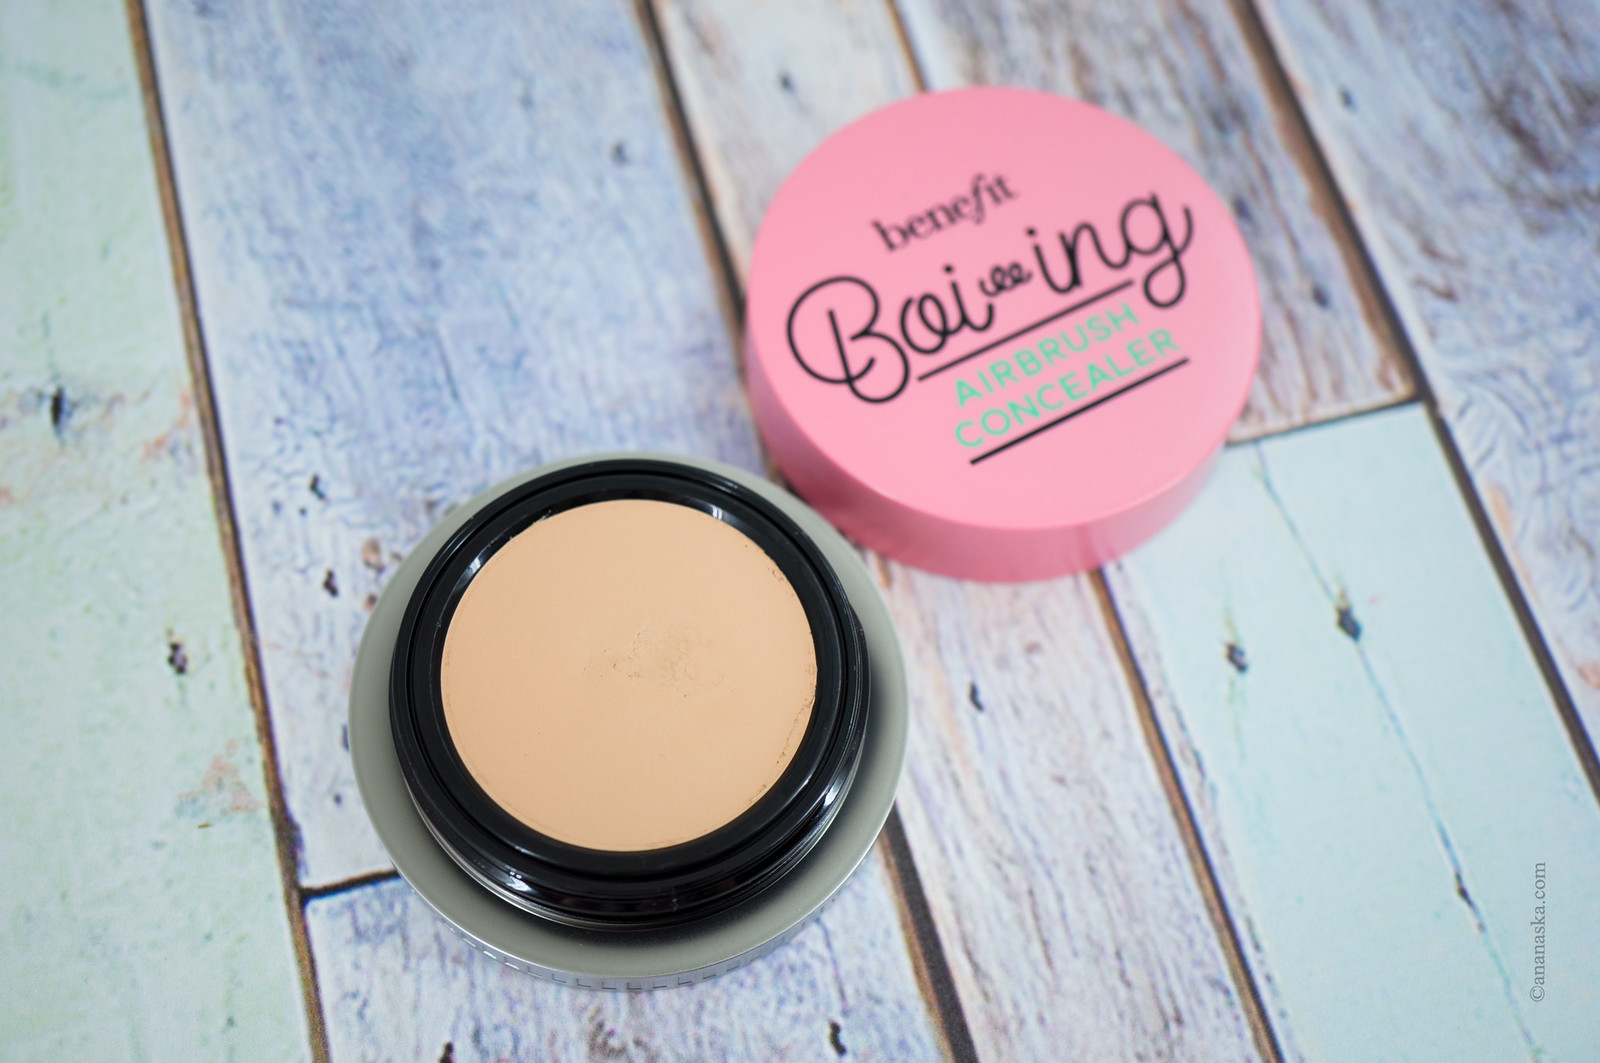 Benefit Boi-ing Airbrush Concealer 02 Medium